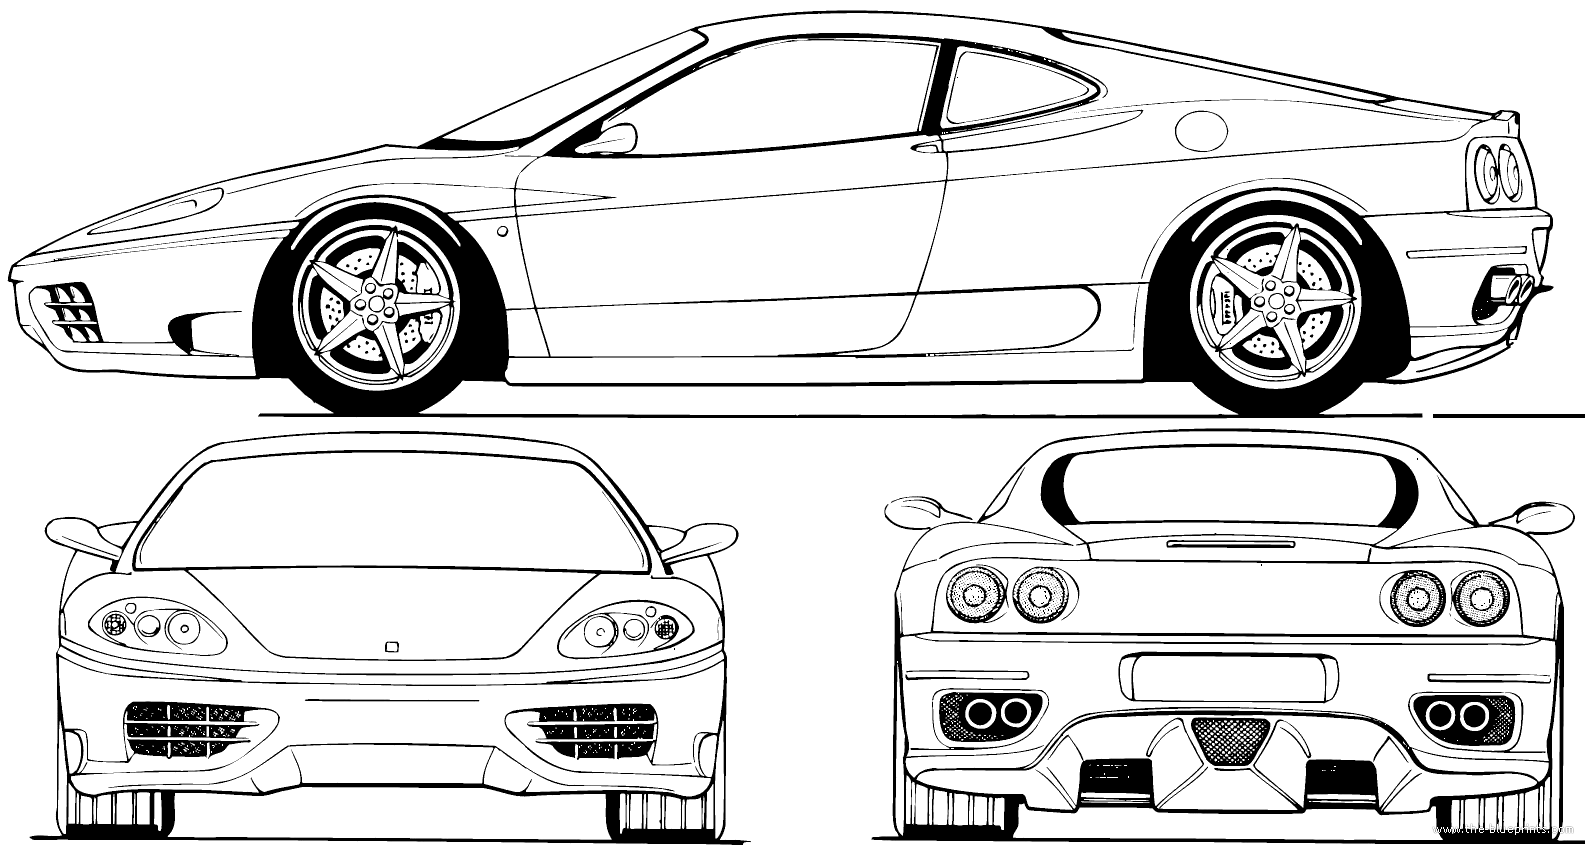 The Blueprints Com Blueprints Gt Cars Gt Ferrari Gt Ferrari